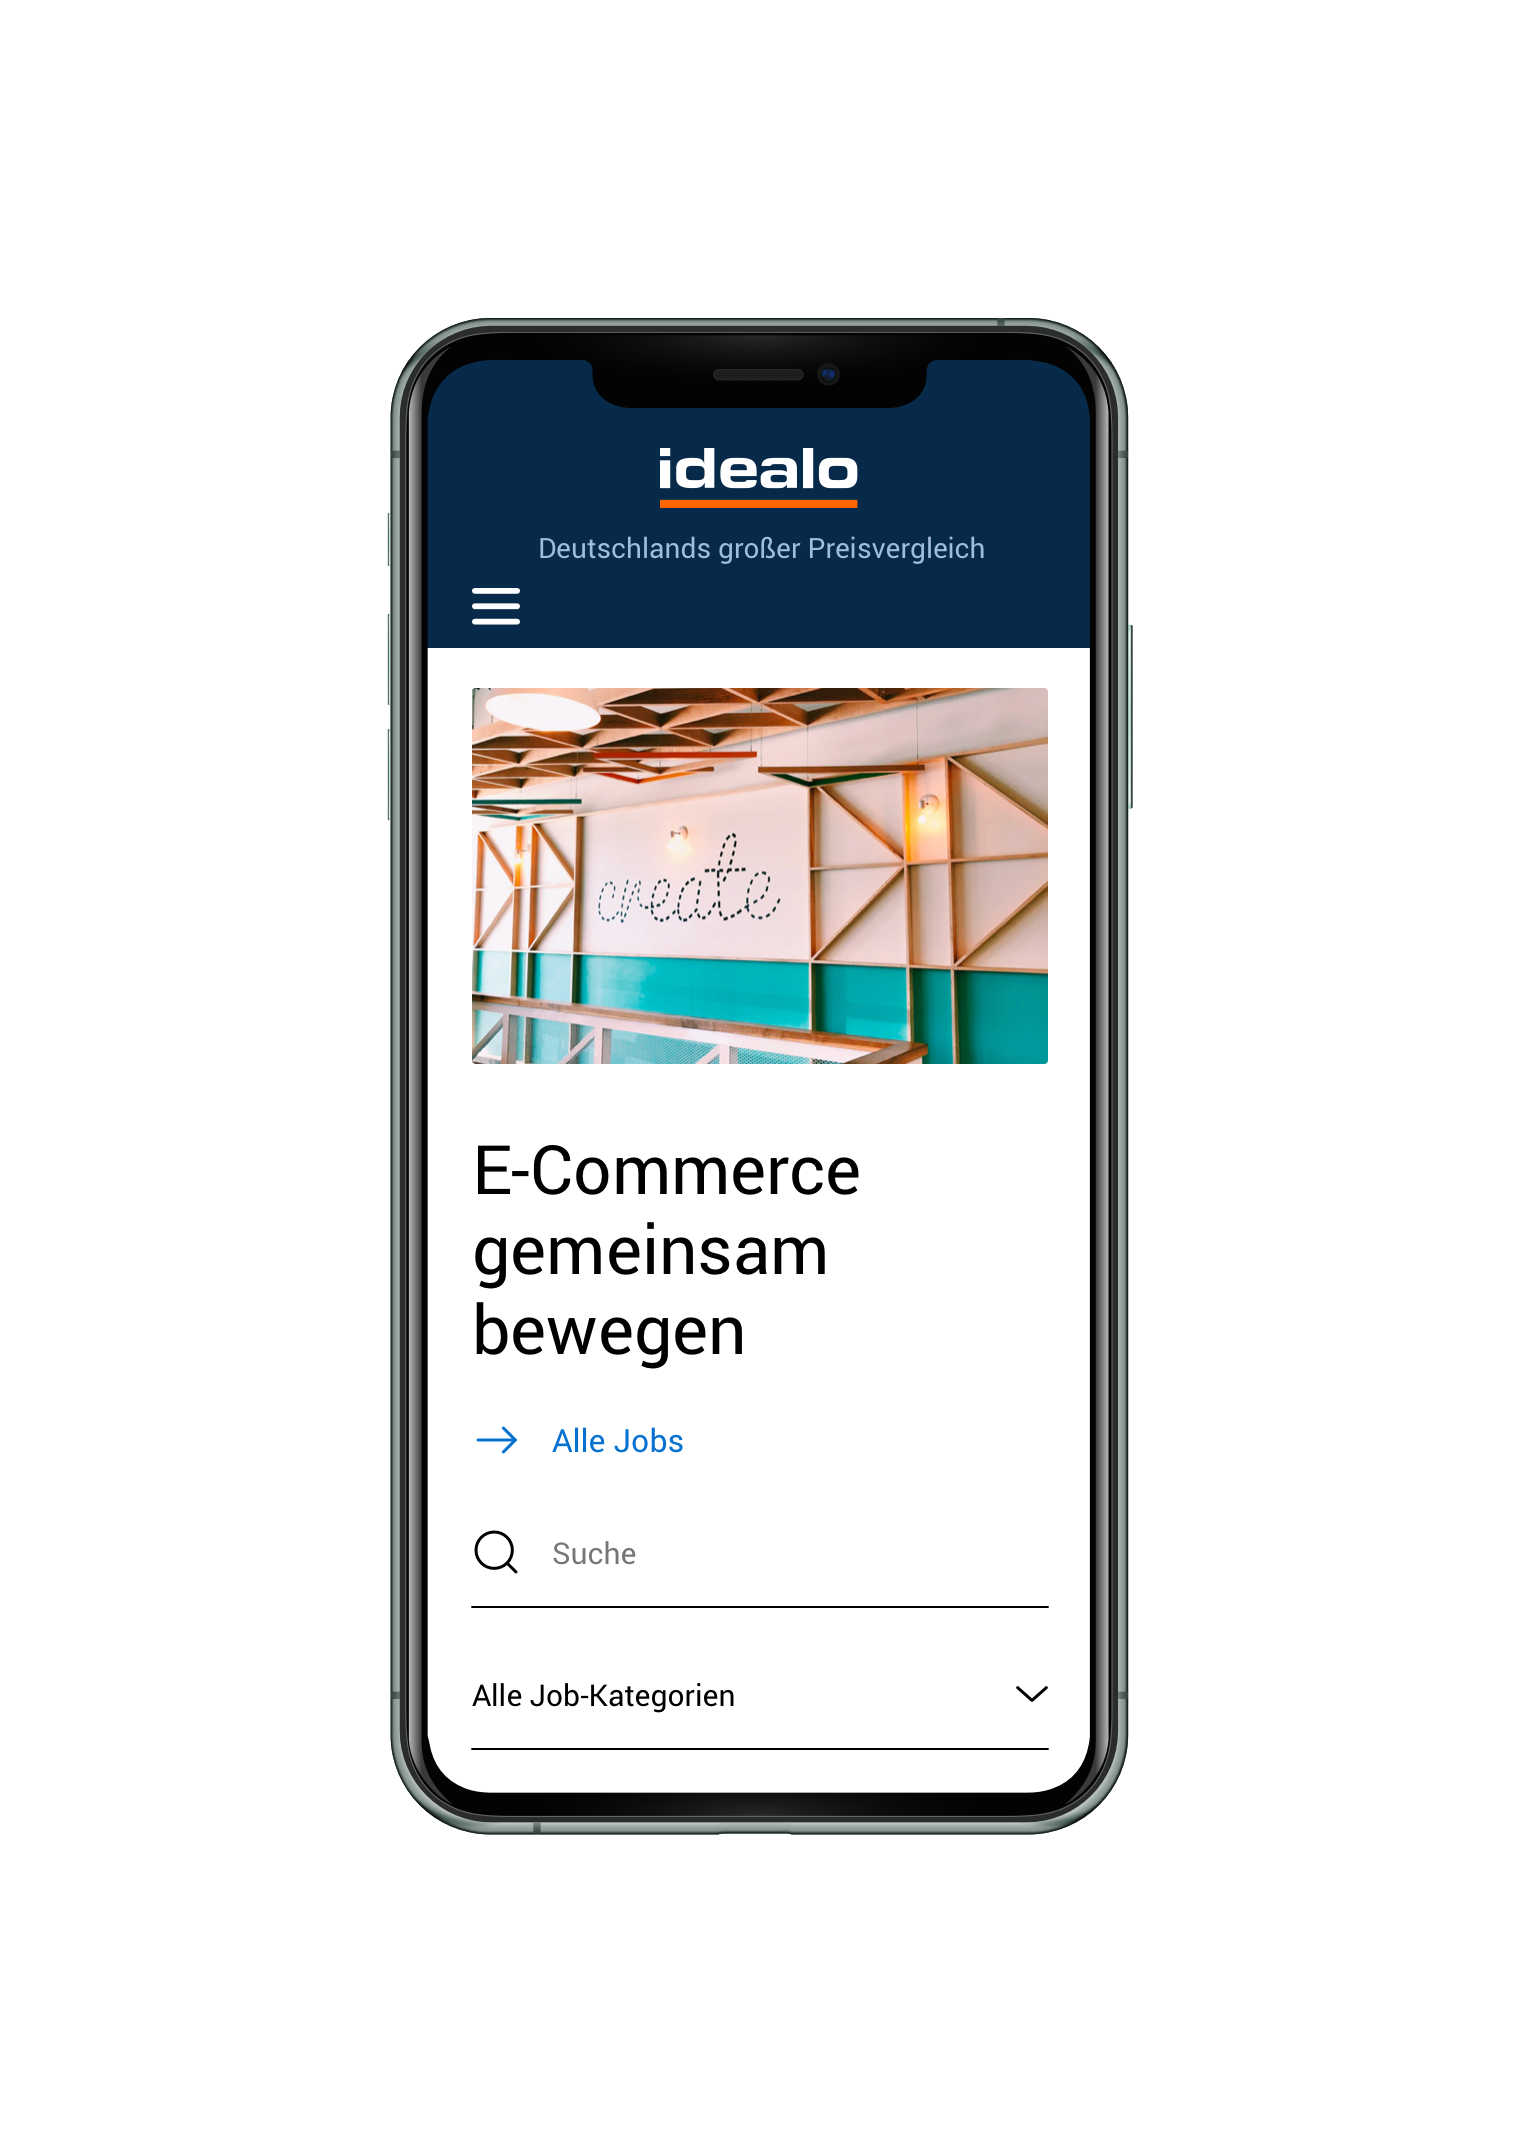 idealo CMS Mobile - View 1